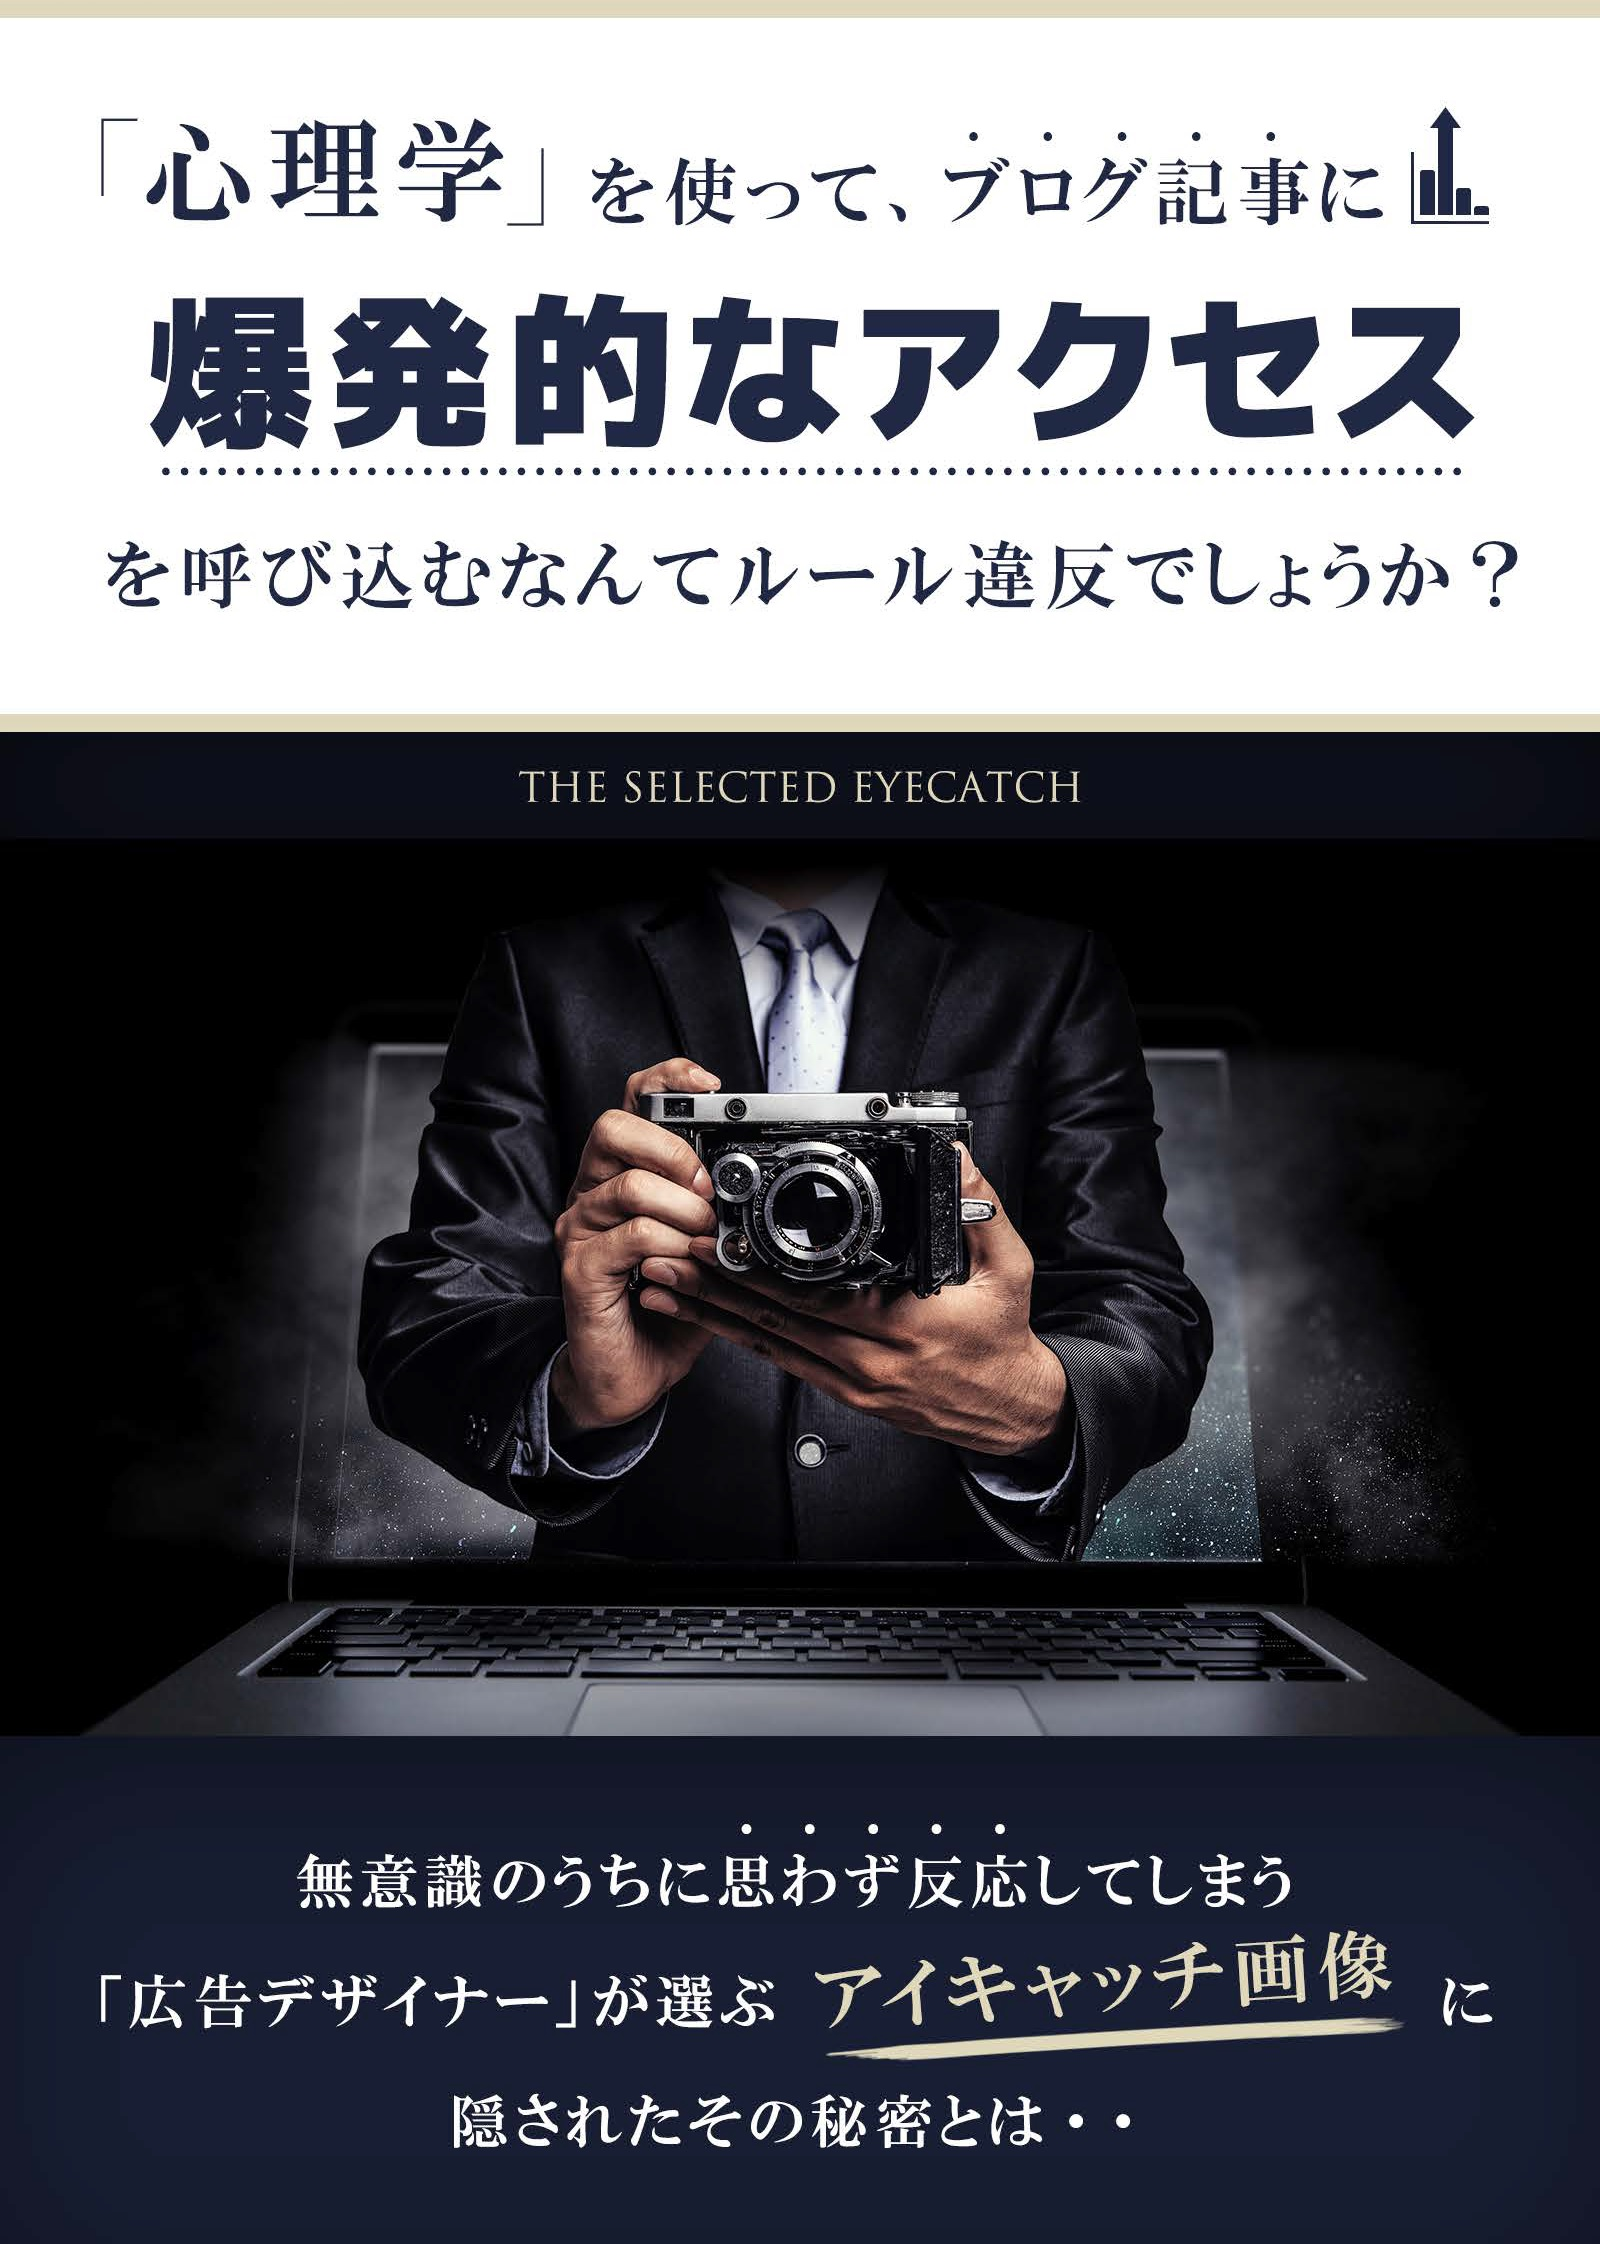 THE SELECTED EYECATCH